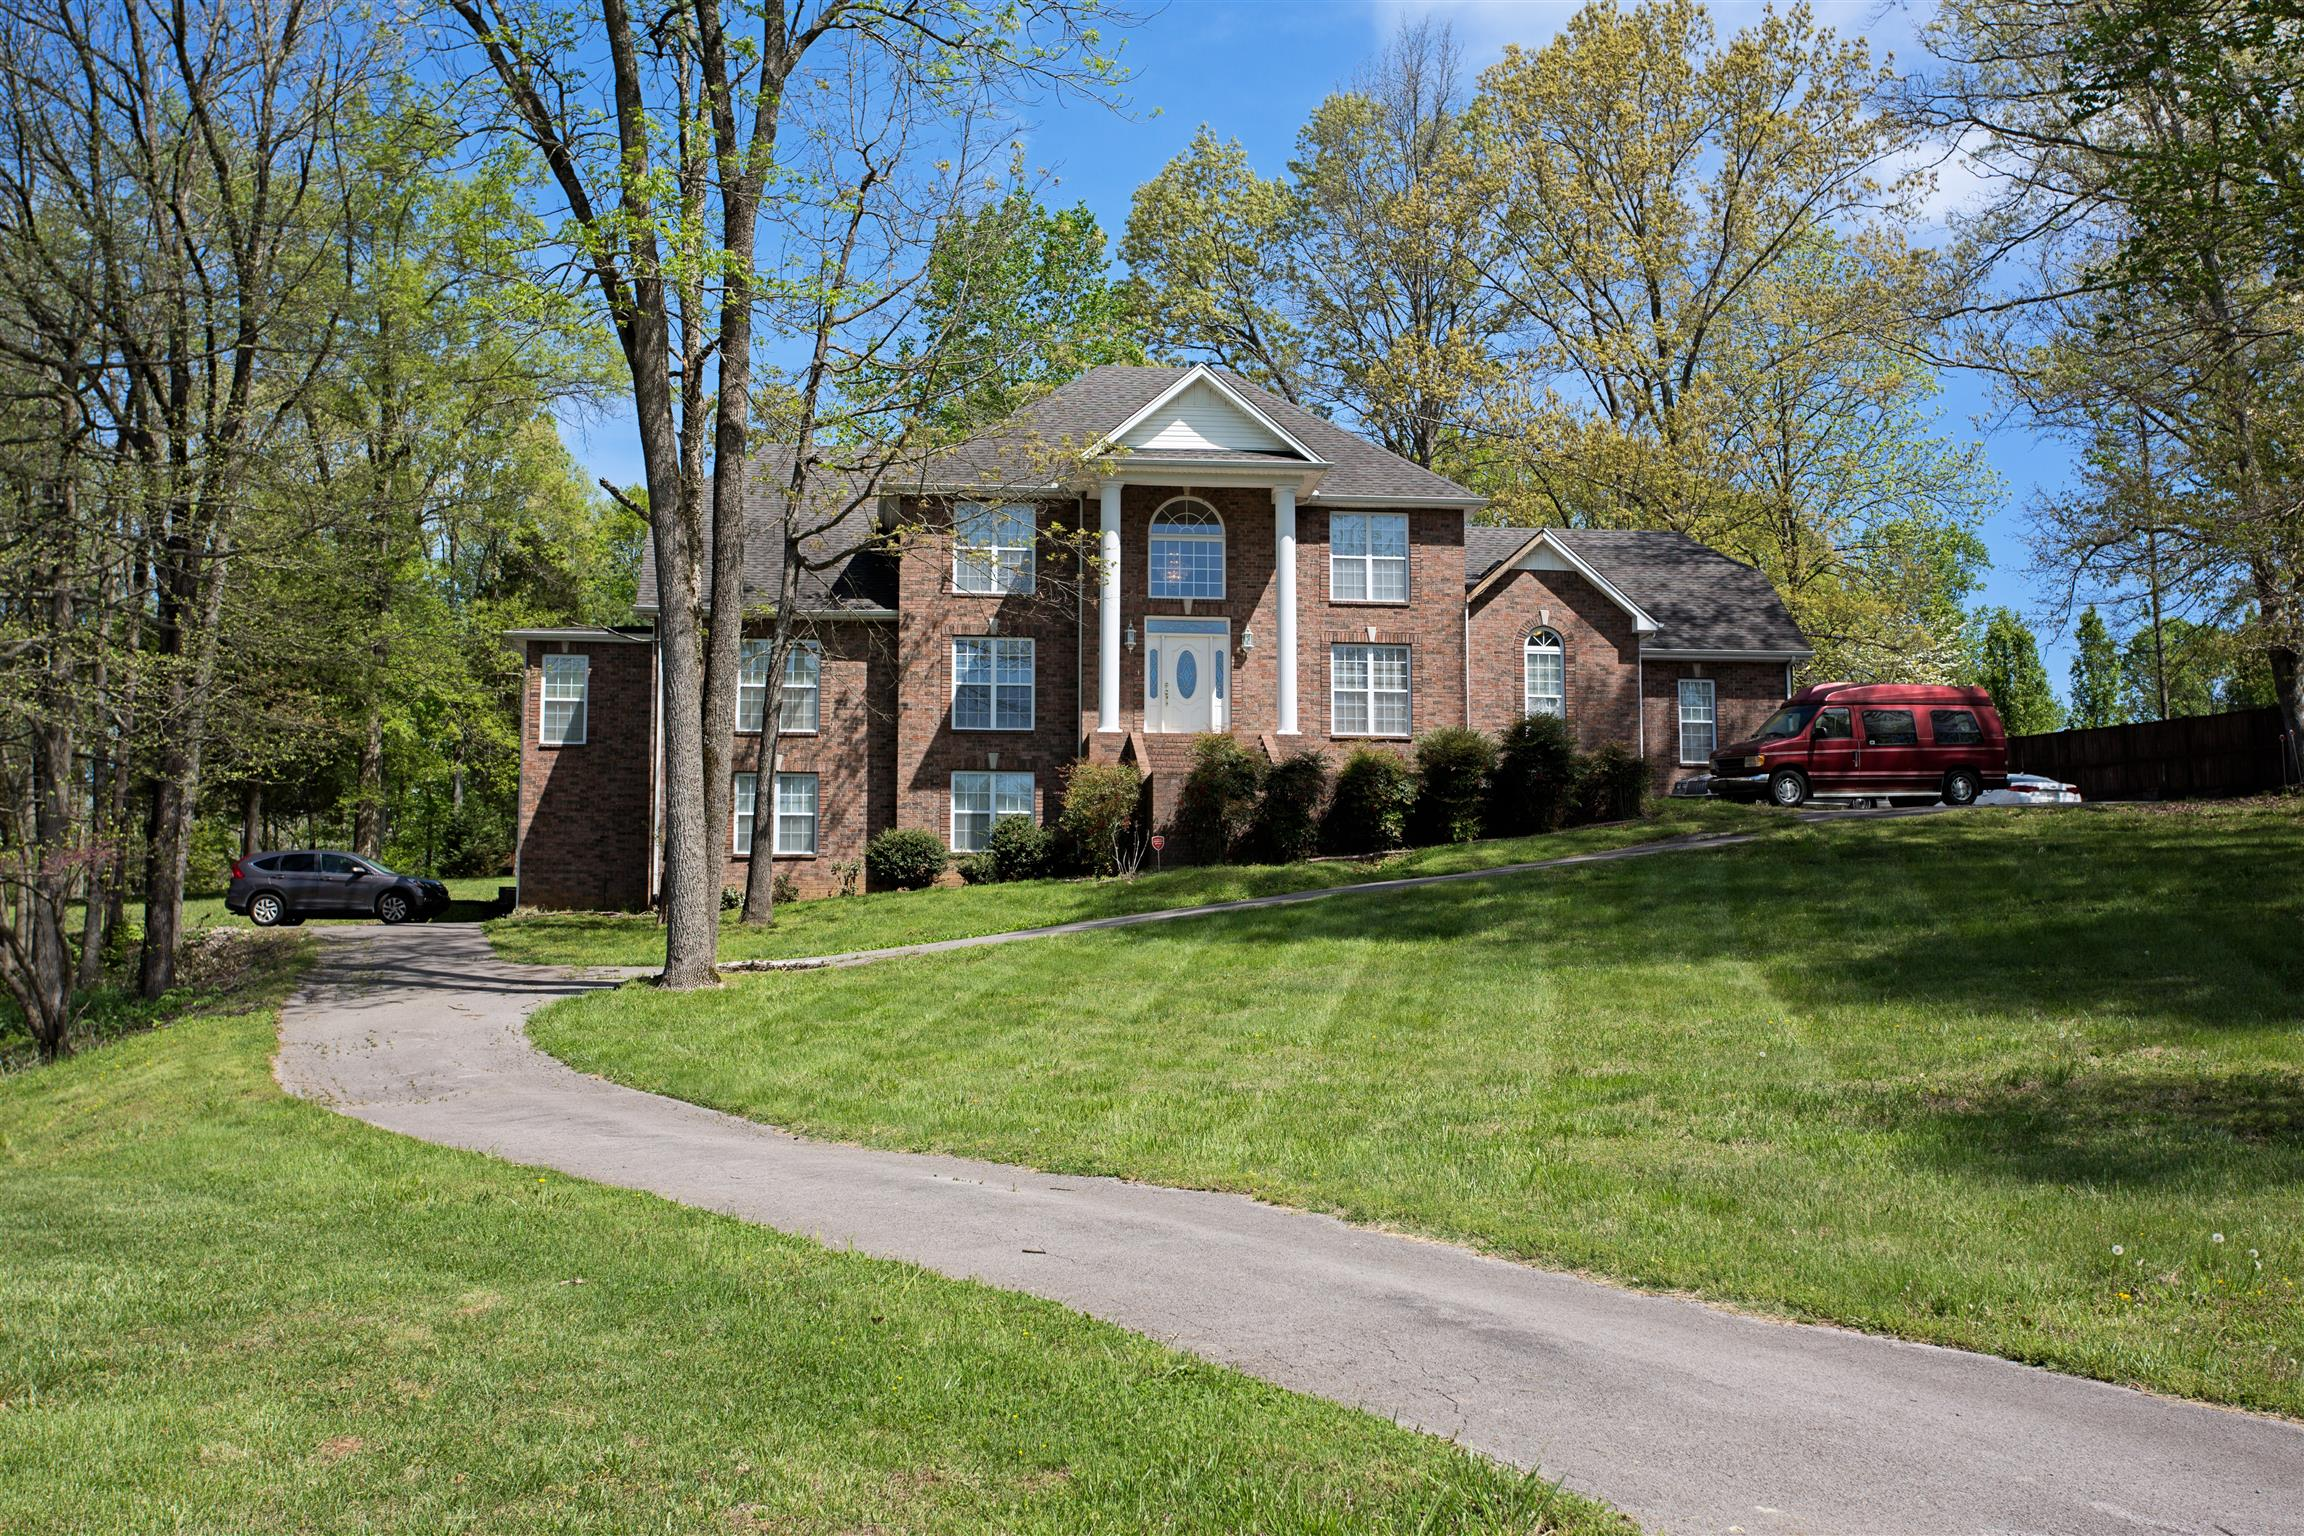 1007 Deer Branch Ln, Greenbrier, TN 37073 - Greenbrier, TN real estate listing